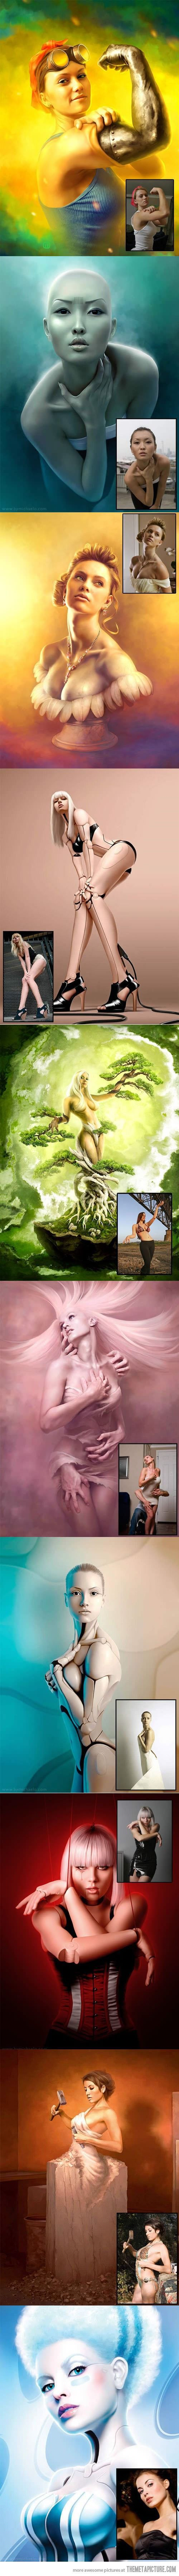 Highly edited images and their origins… | Photography+Passion